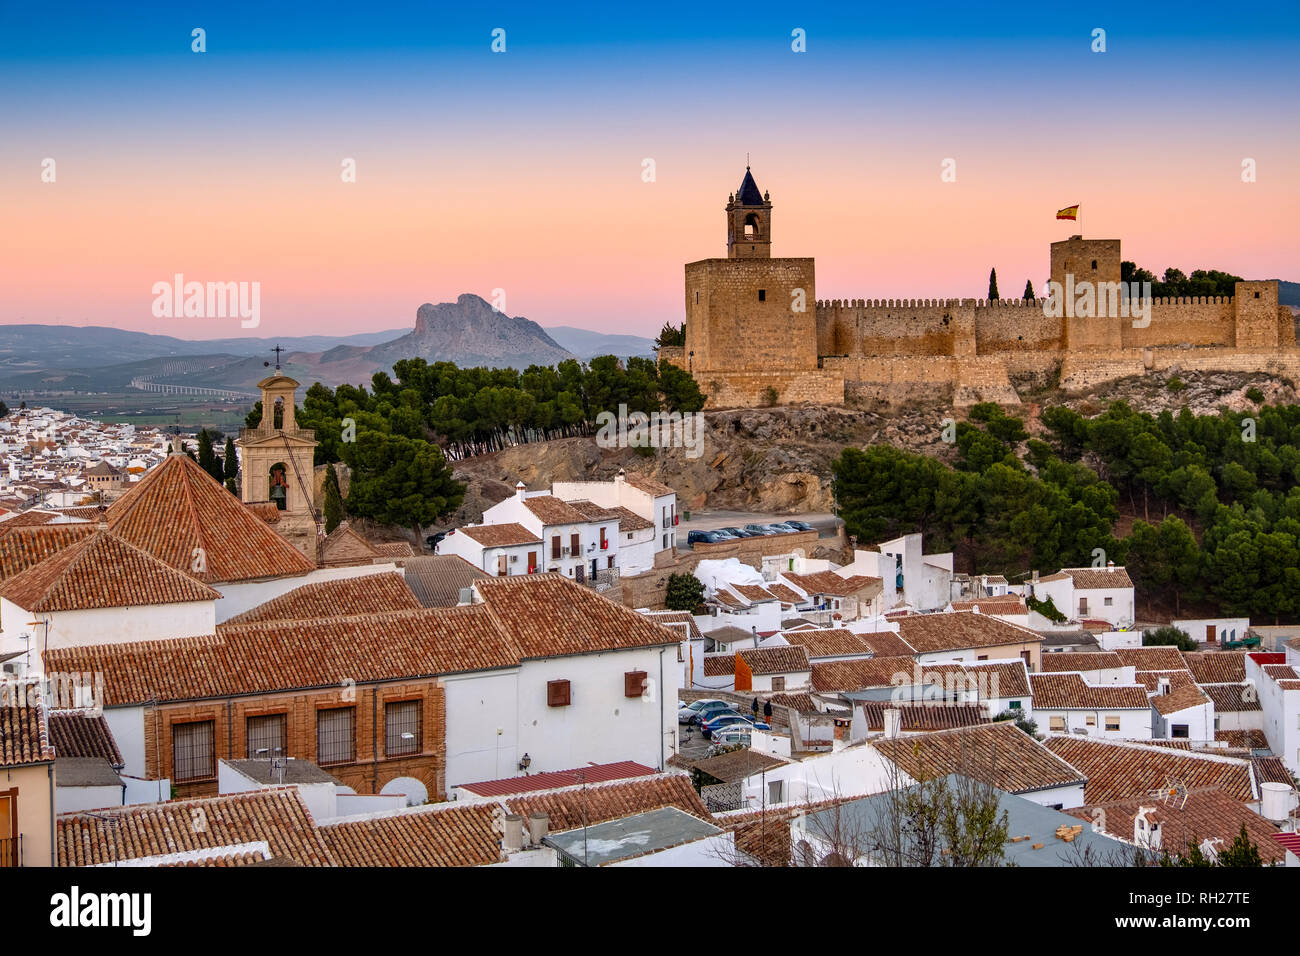 Old town and citadel castle. Monumental city of Antequera, Malaga province. Andalusia, Southern Spain. Europe Stock Photo